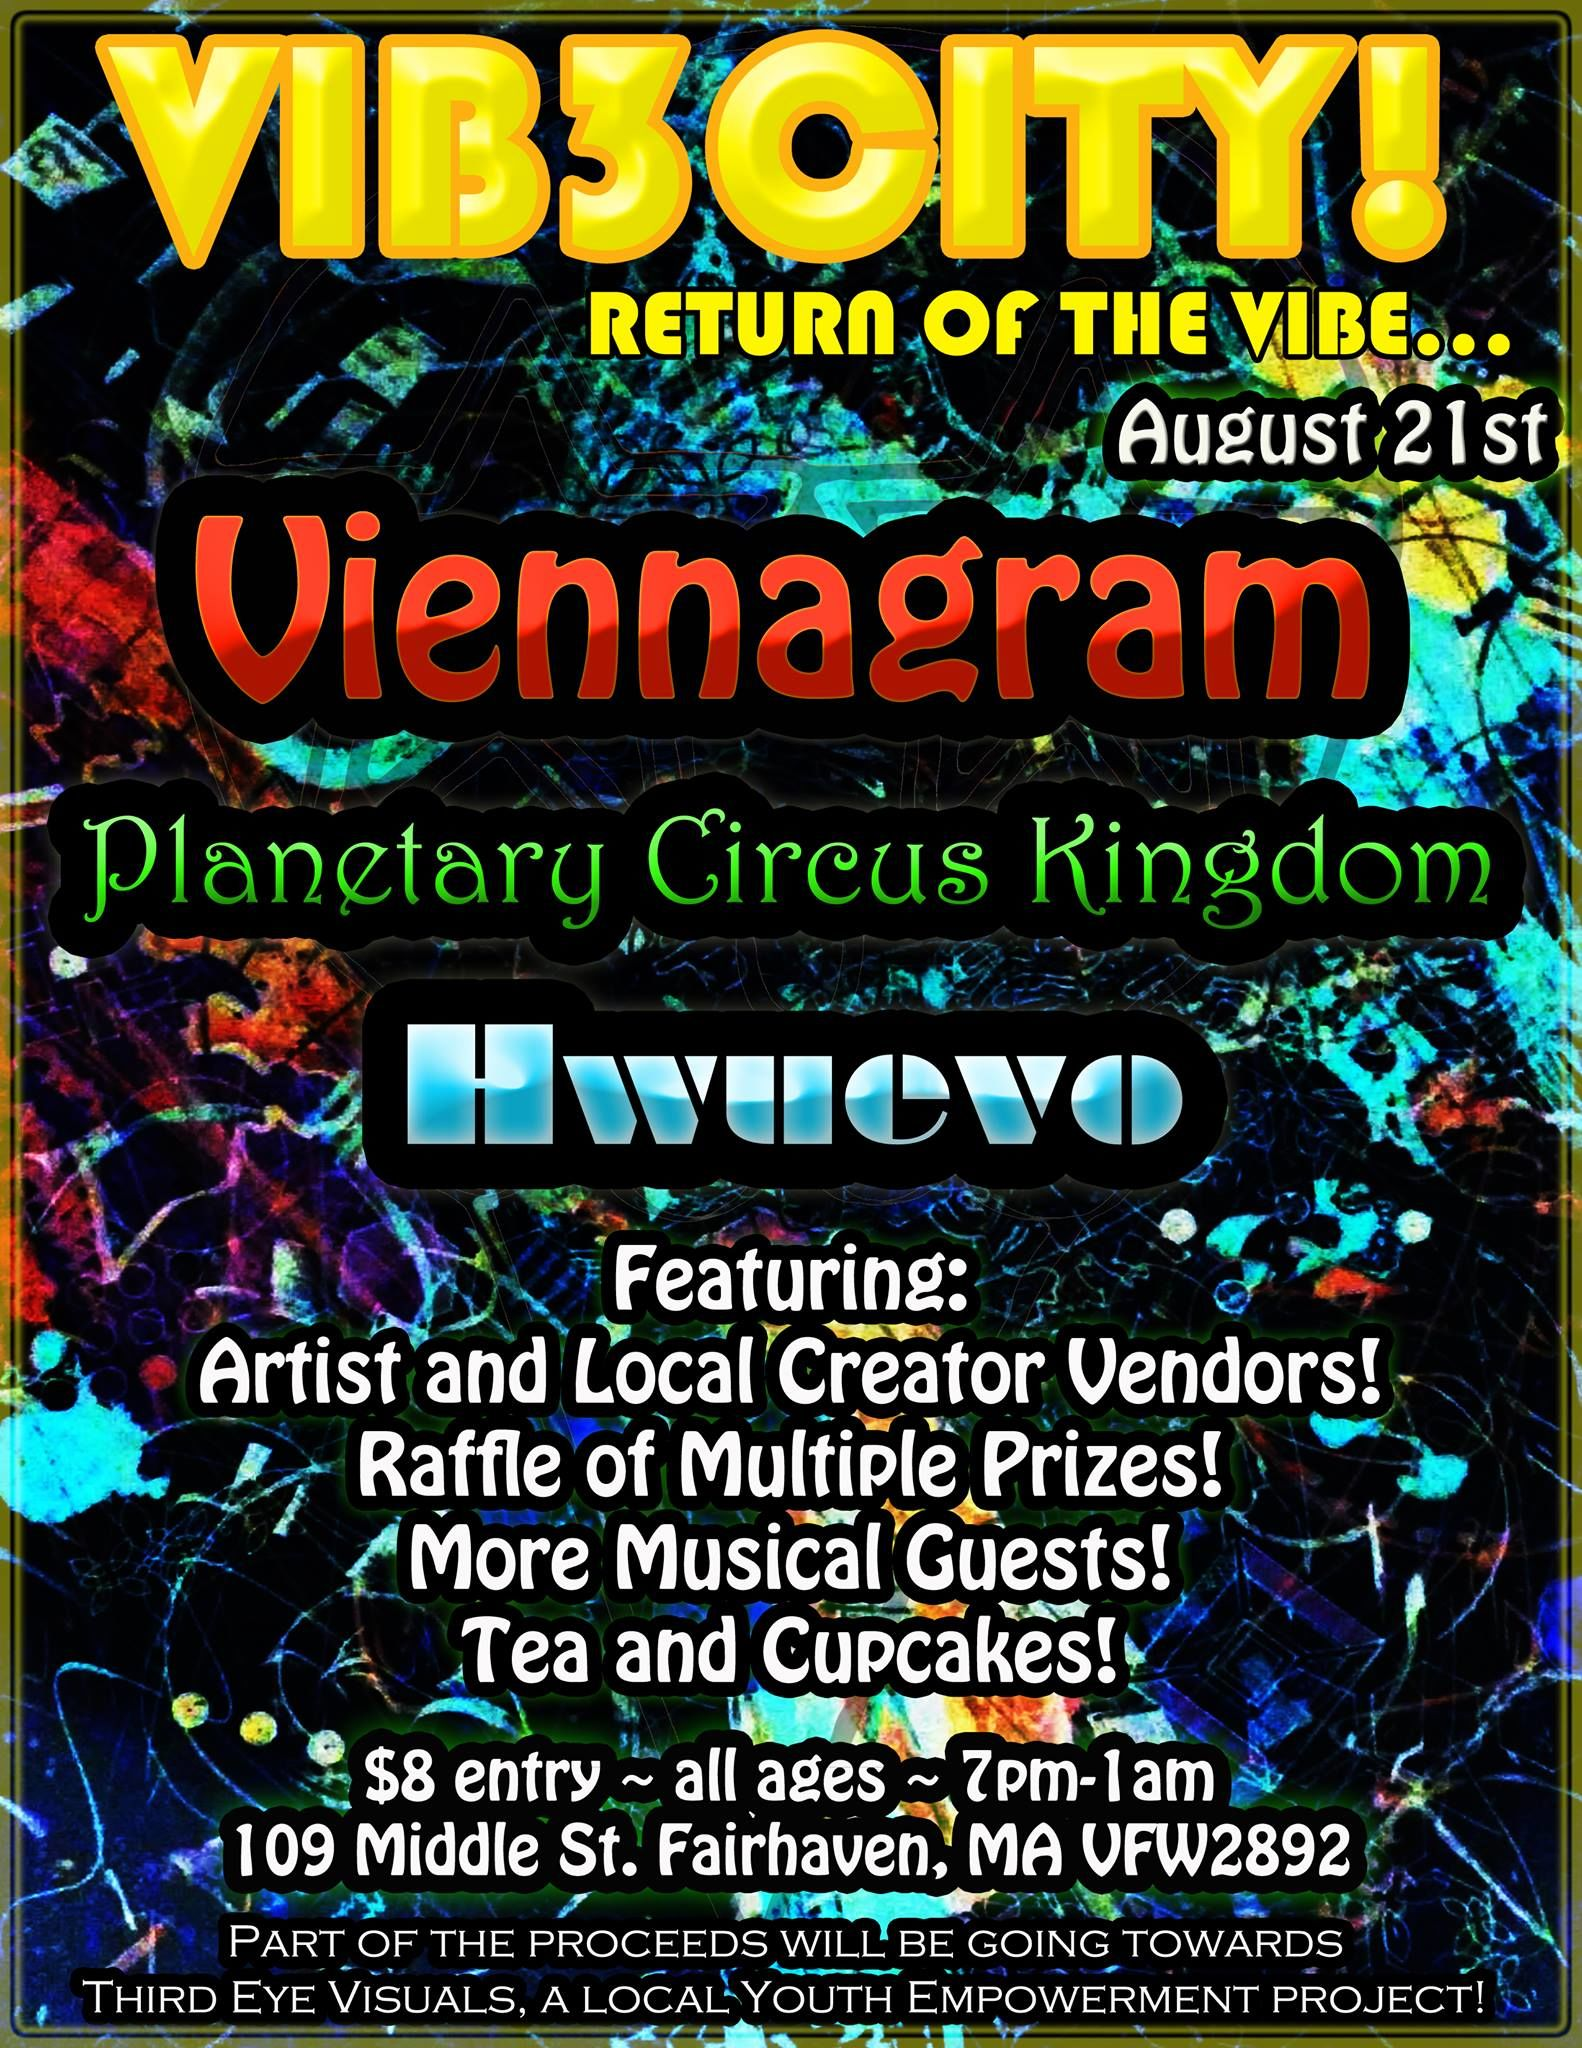 vib3_city_return_of_the_vibe_flier